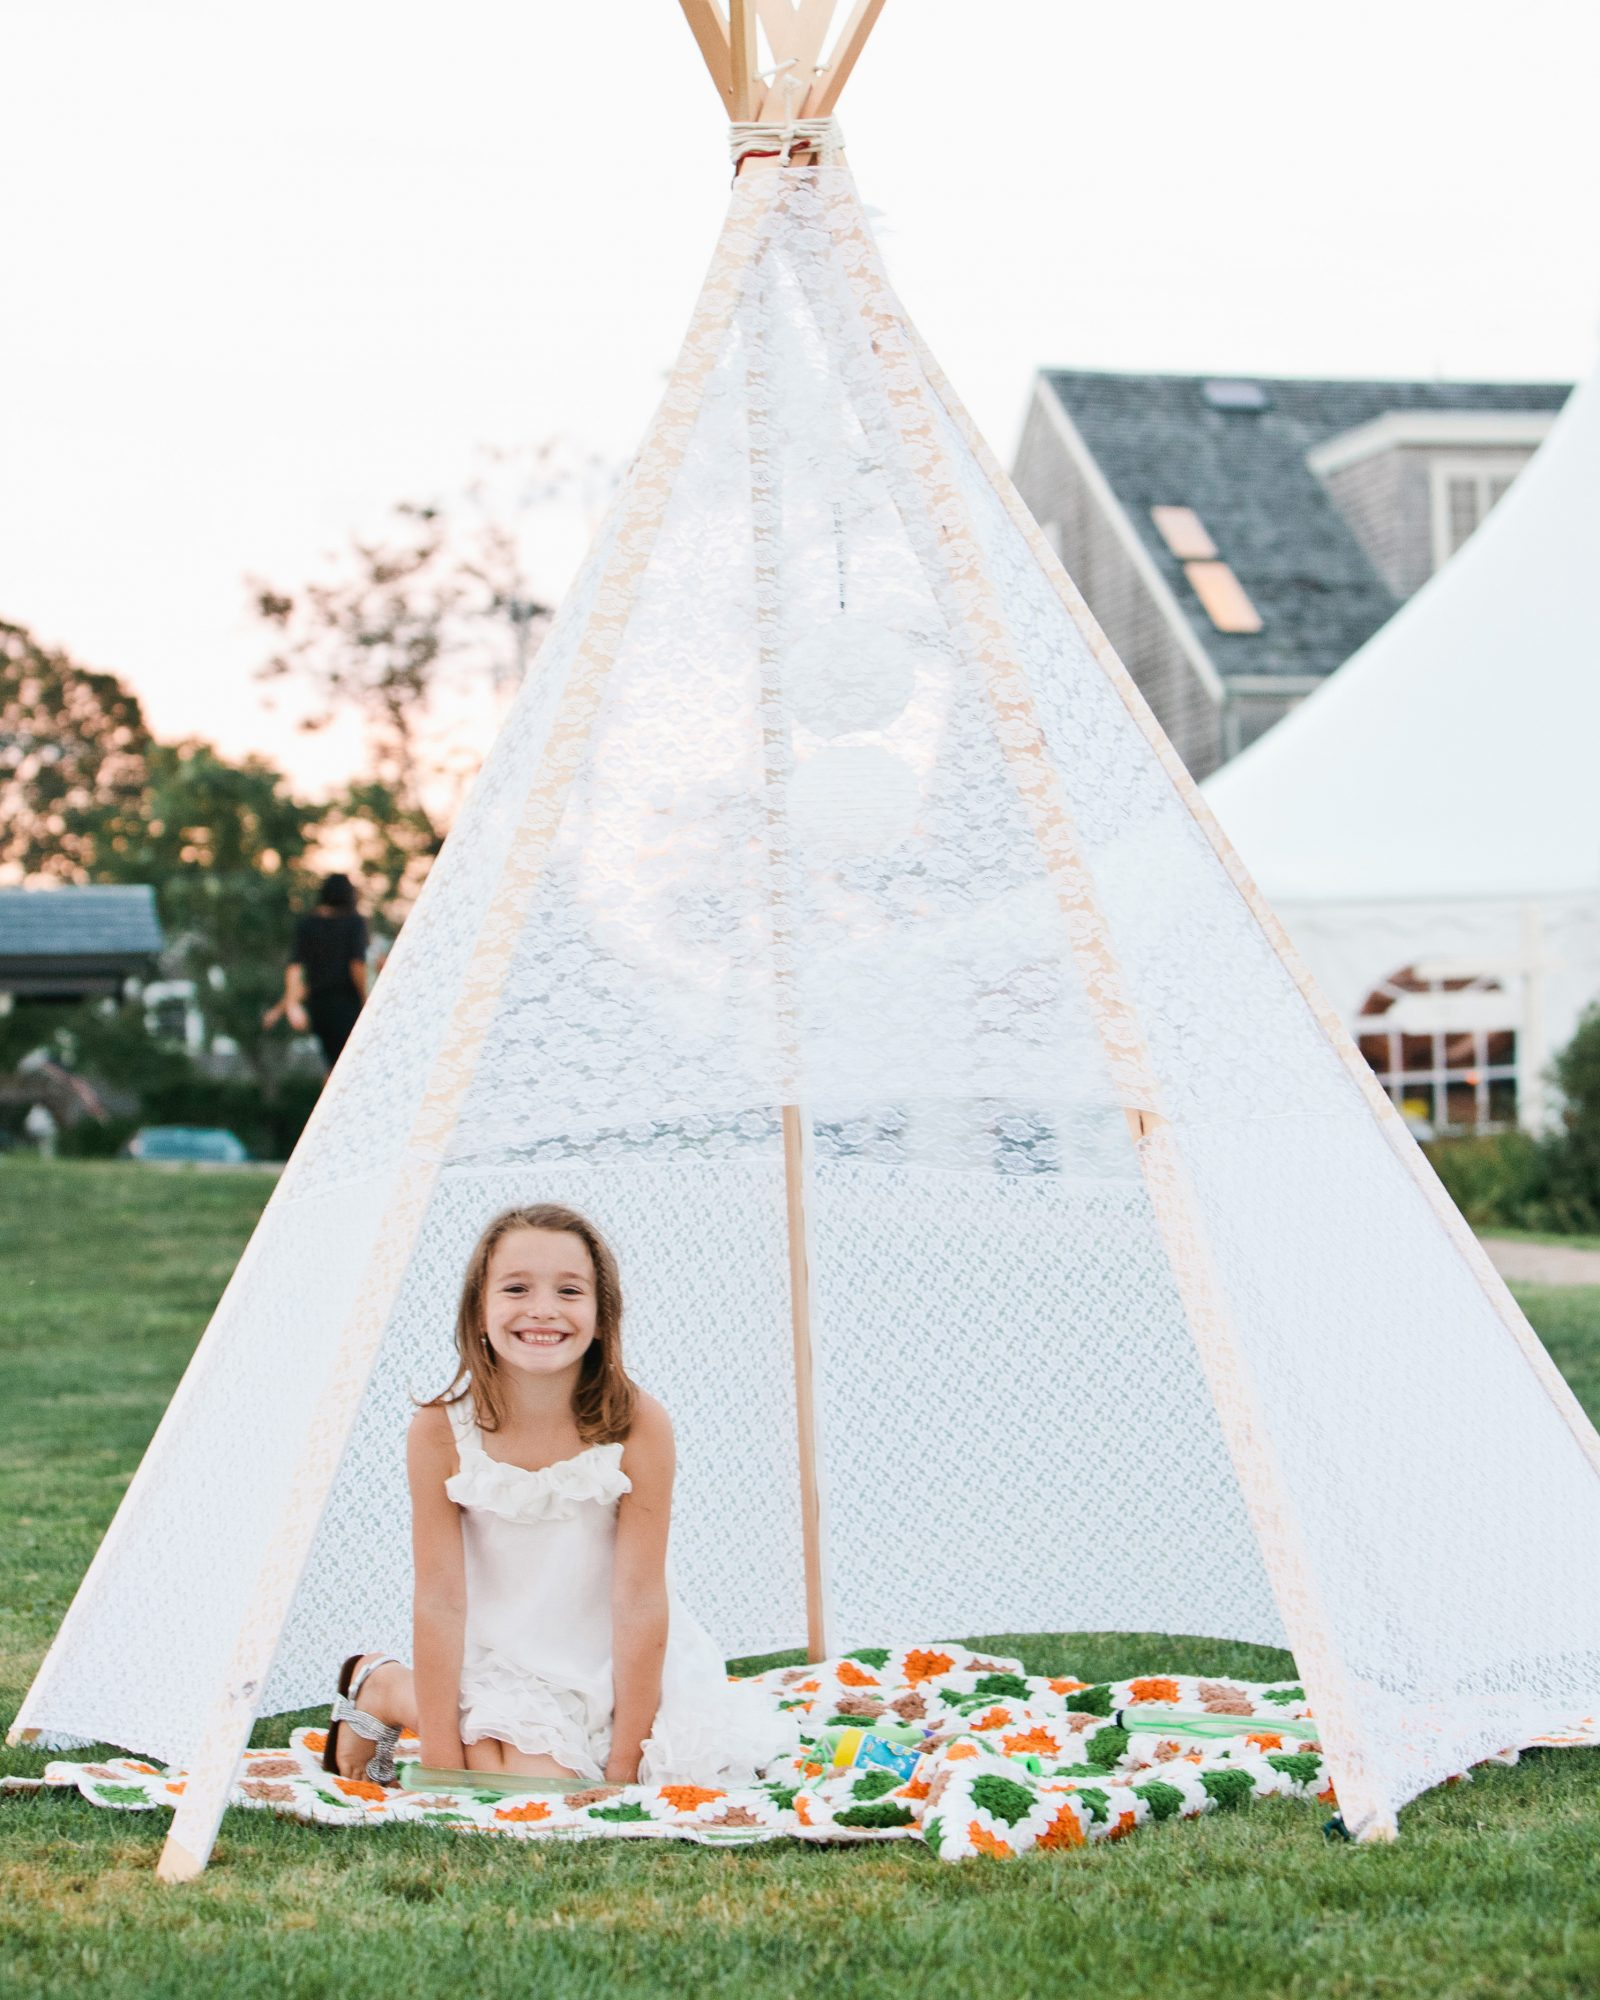 jola-tom-wedding-teepee-0614.jpg